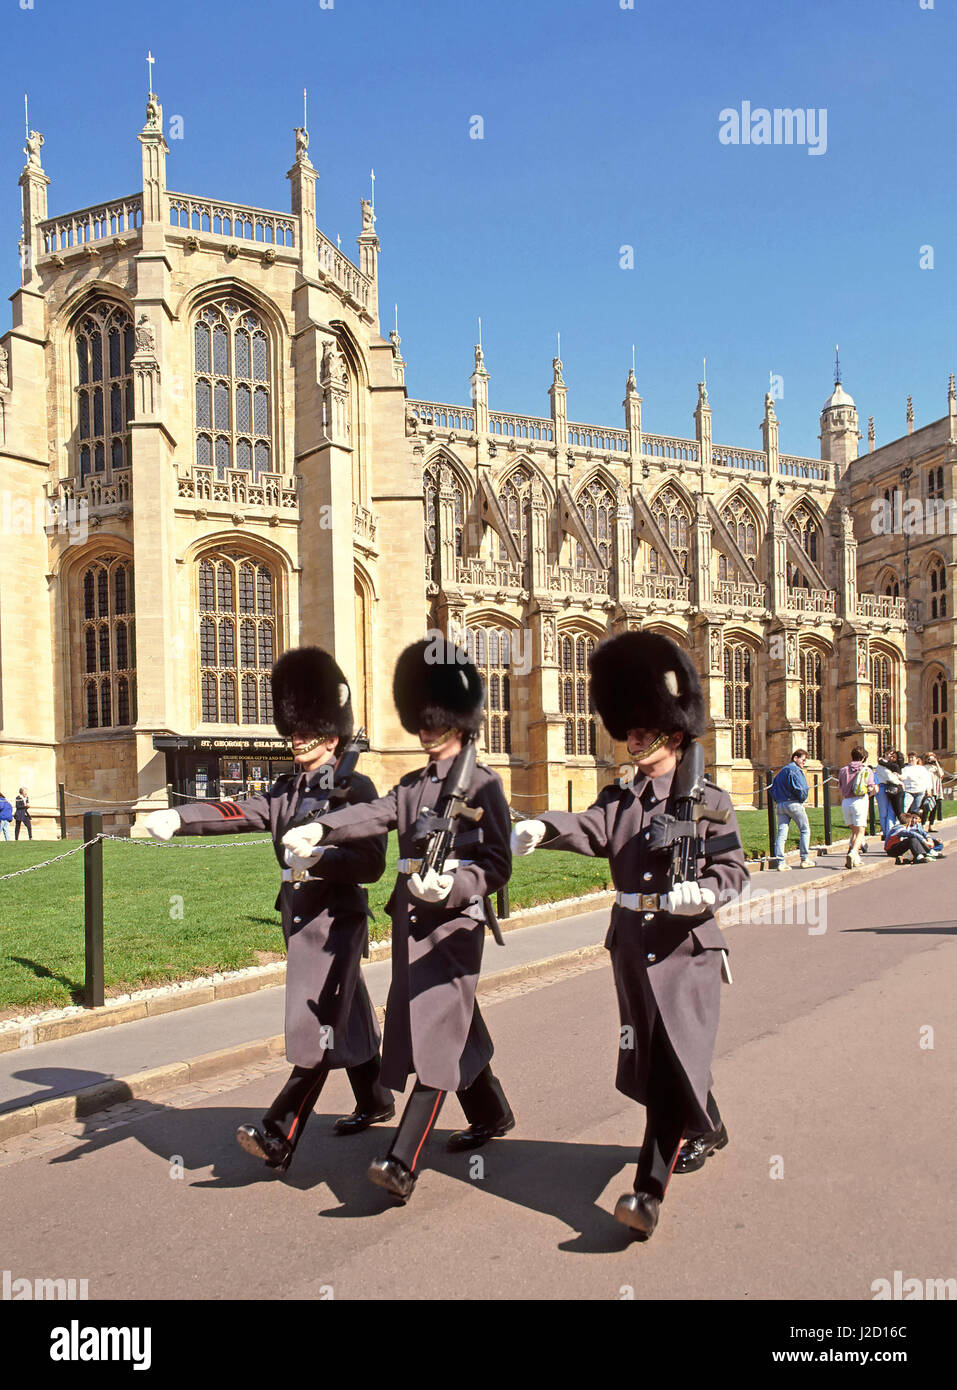 St Georges Chapel Windsor Castle Berkshire England UK British Army Grenadier guardsmen soldiers marching in winter - Stock Image